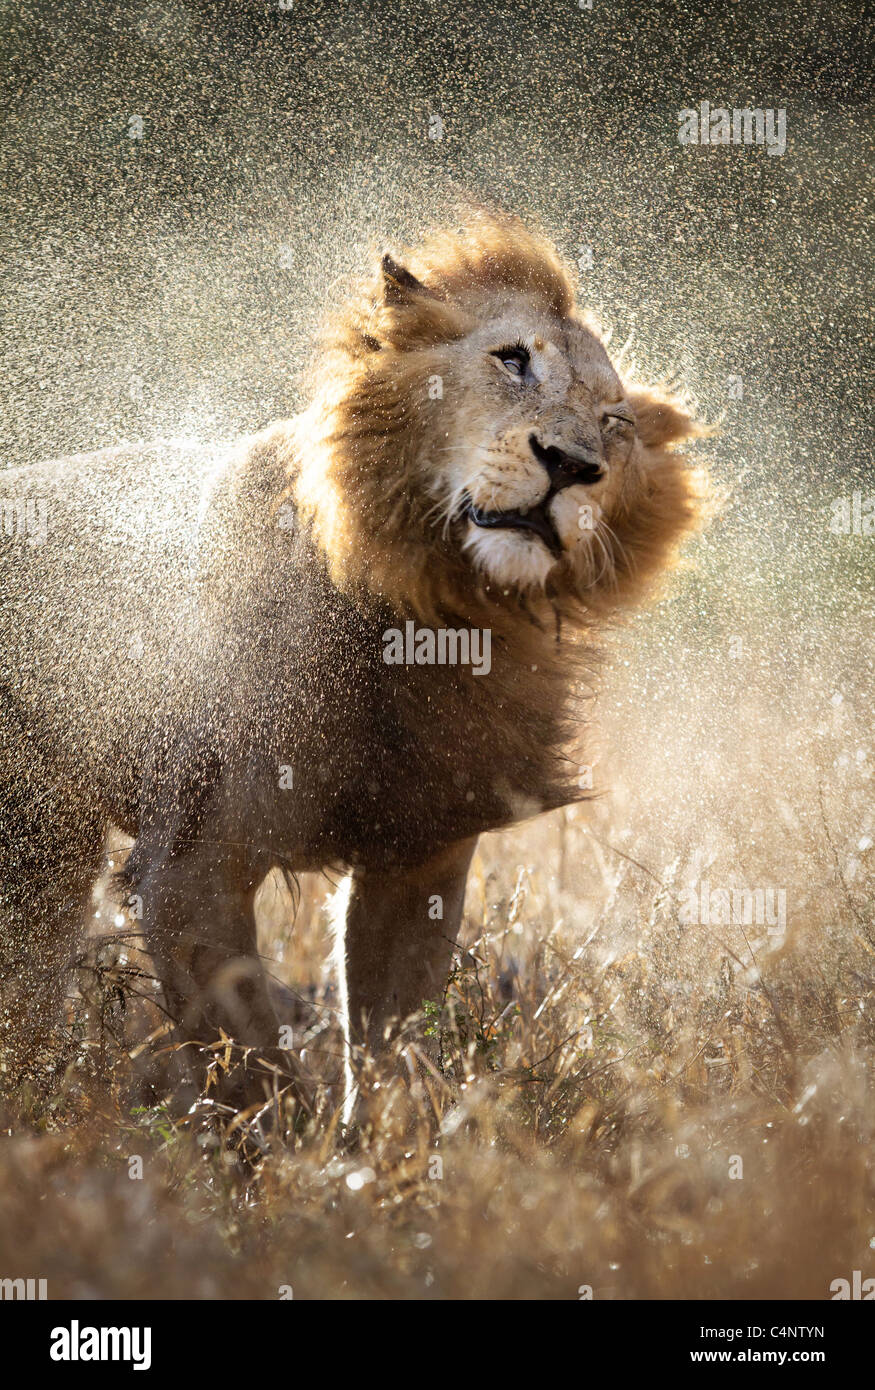 Male lion shaking off the water after a rainstorm - Kruger National Park - South Africa Stock Photo